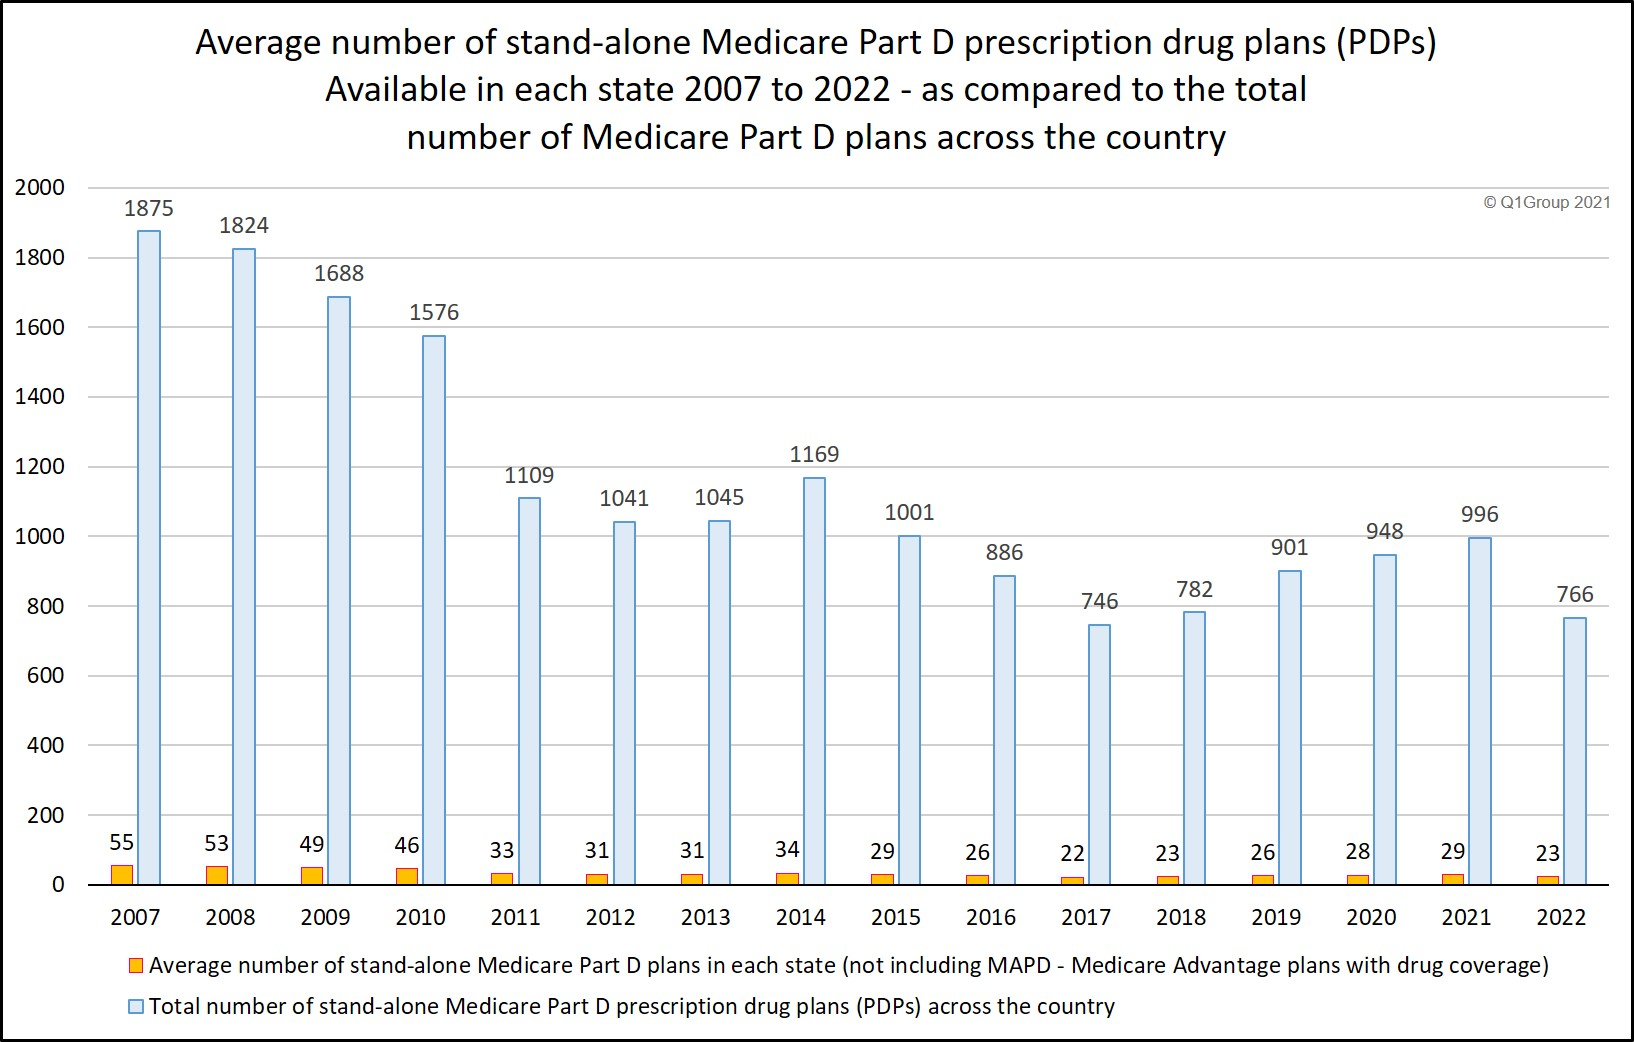 Average number of Medicare Part D plans 2007 to 2022 as compared to the total number of PDPs across the country